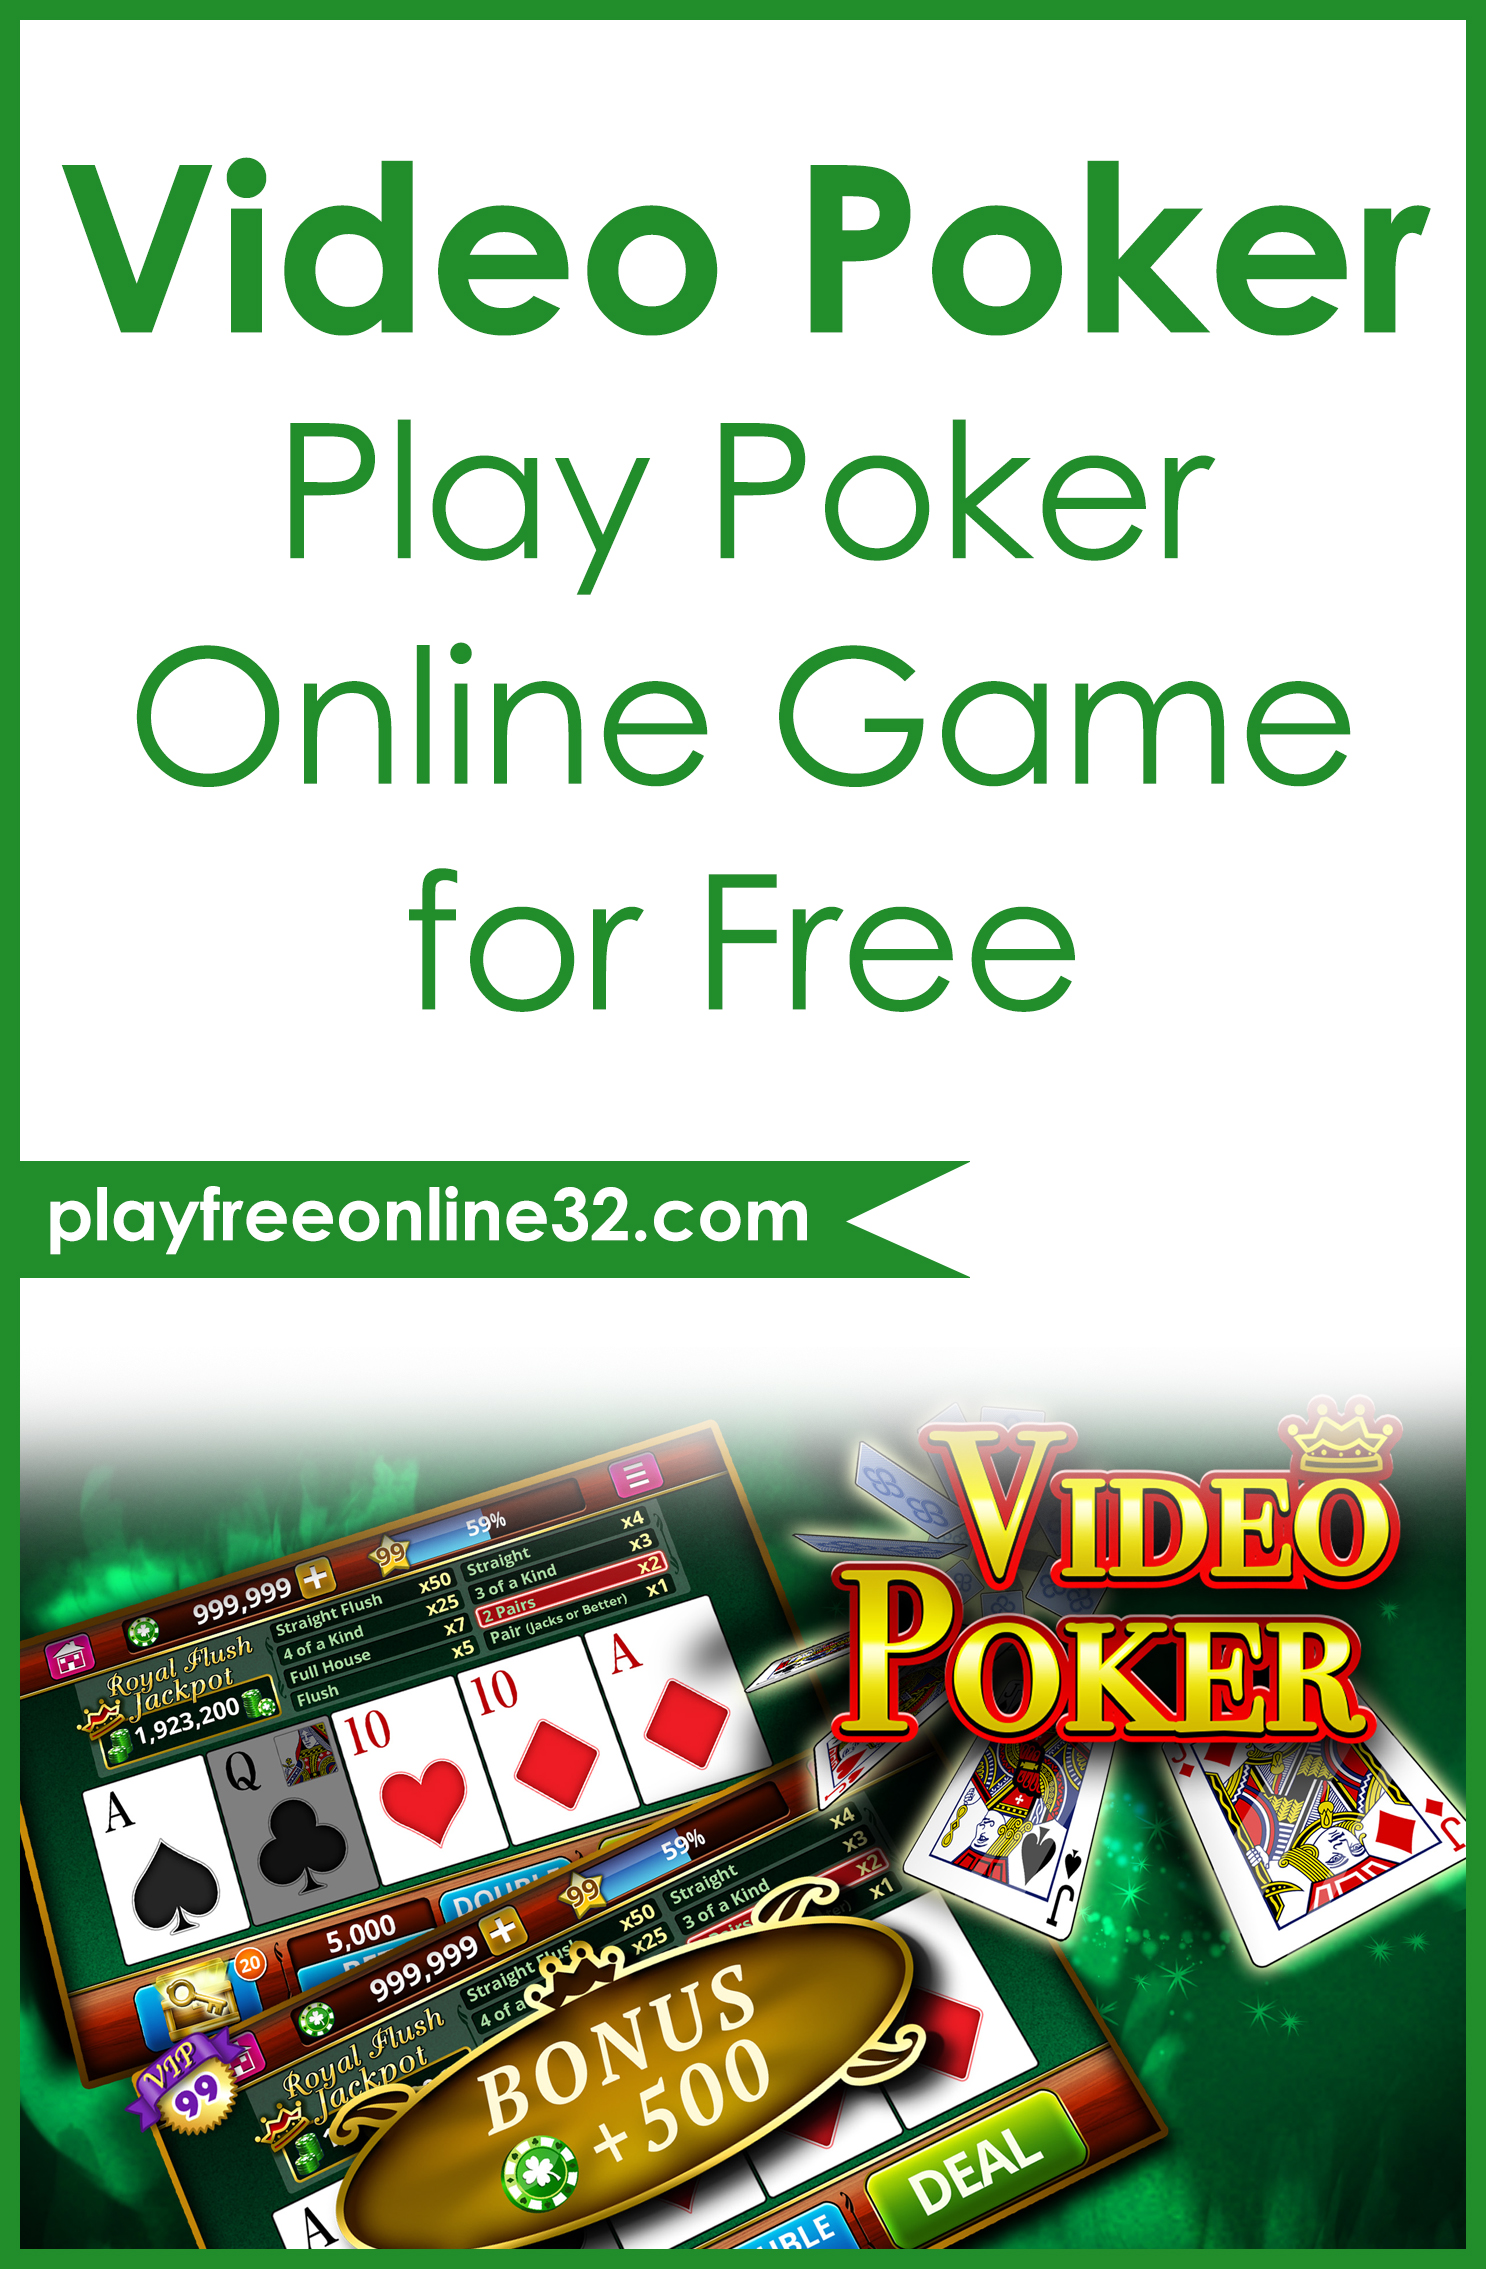 Video Poker • Play Poker Online Game for Free Pinterest